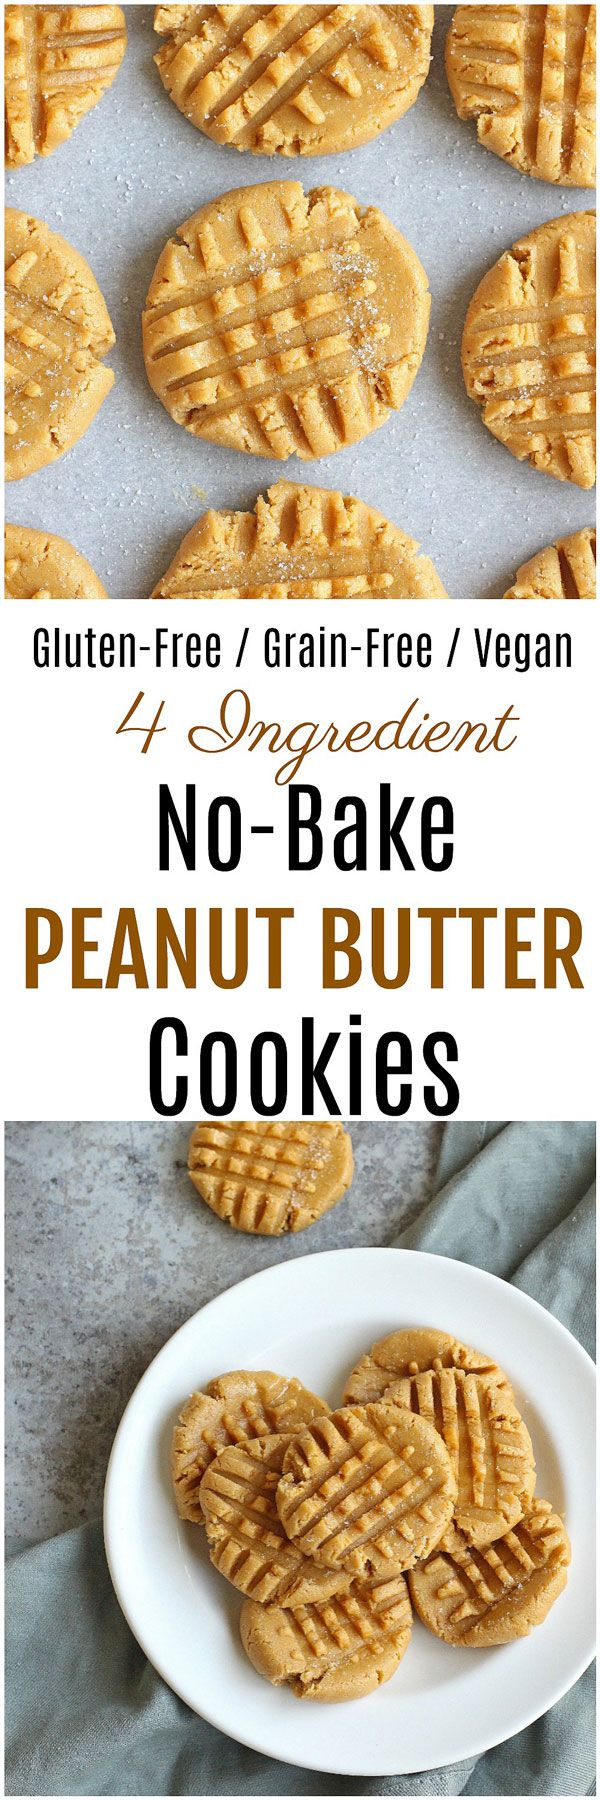 Vegan No Bake Peanut Butter Cookies - Craving a peanut butter cookie but don't want to turn on the oven? These Vegan No-Bake Peanut Butter Cookies are the answer! Grain-free, gluten-free, dairy-free and vegan, these cookies require just four simple ingredients.